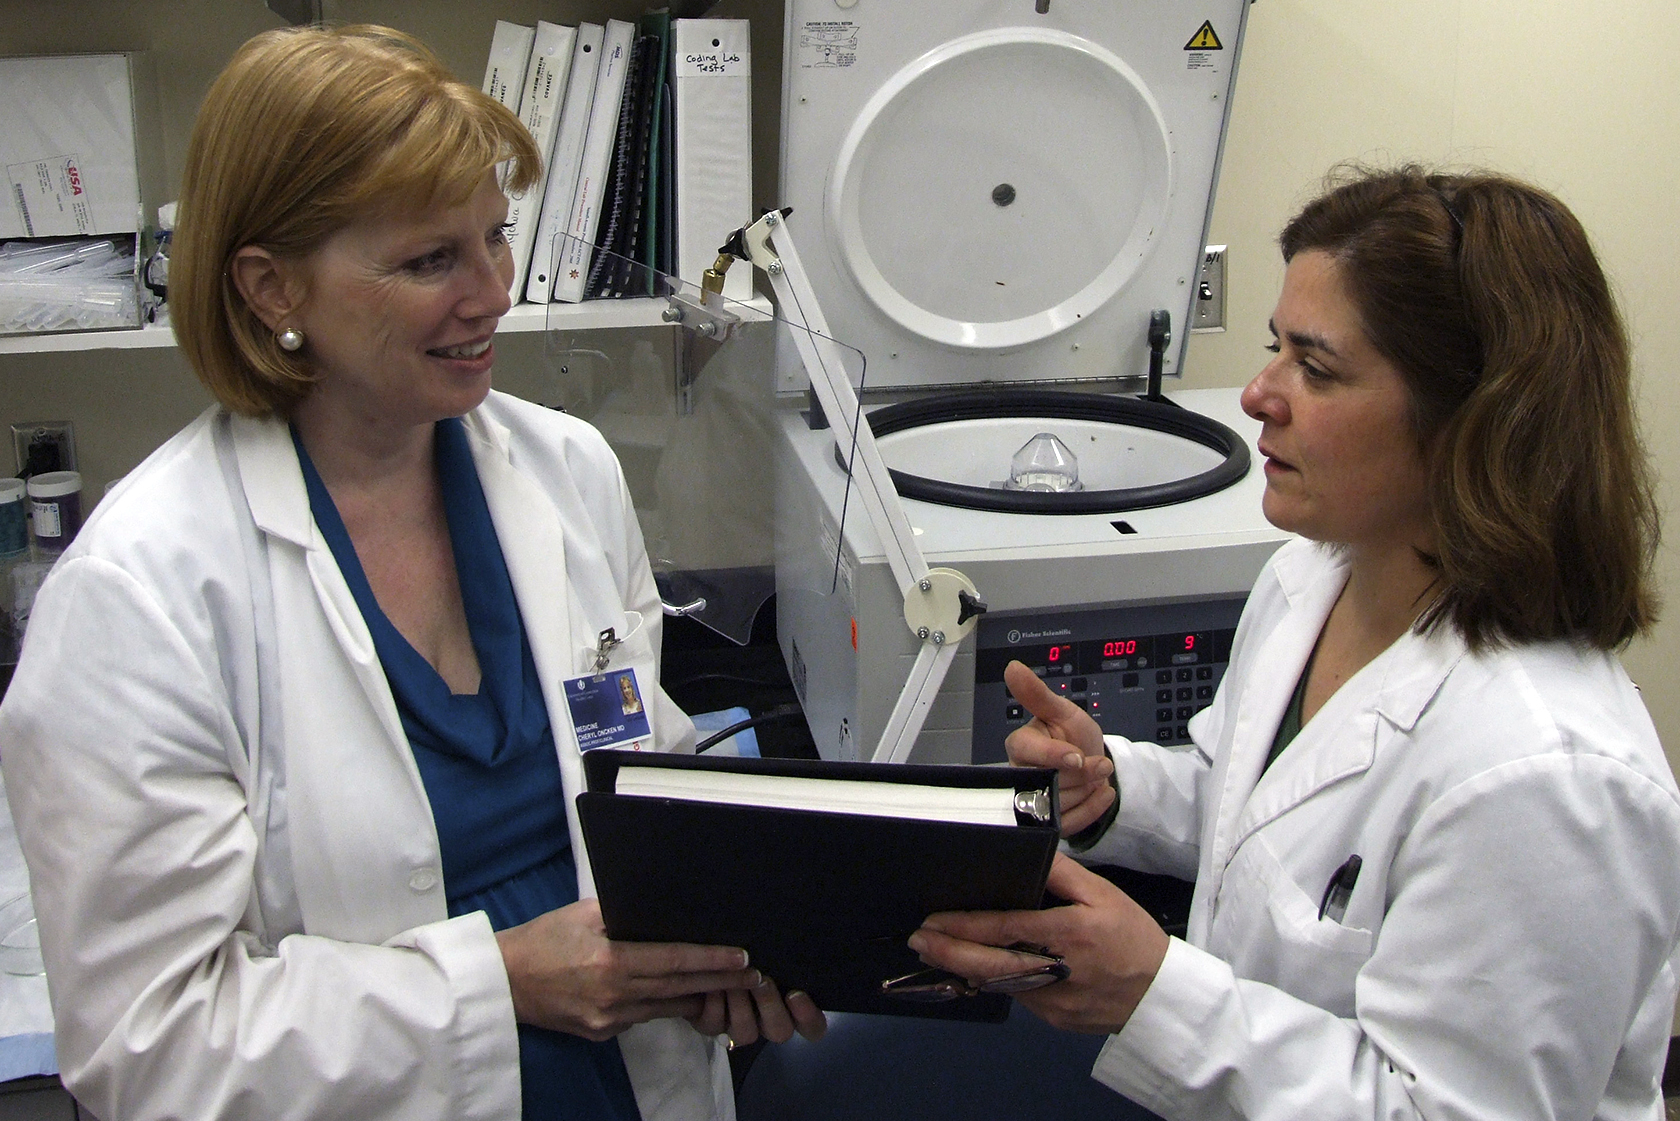 Cheryl Oncken, M.D., M.P.H., with Pam Ferzacca, research assistant